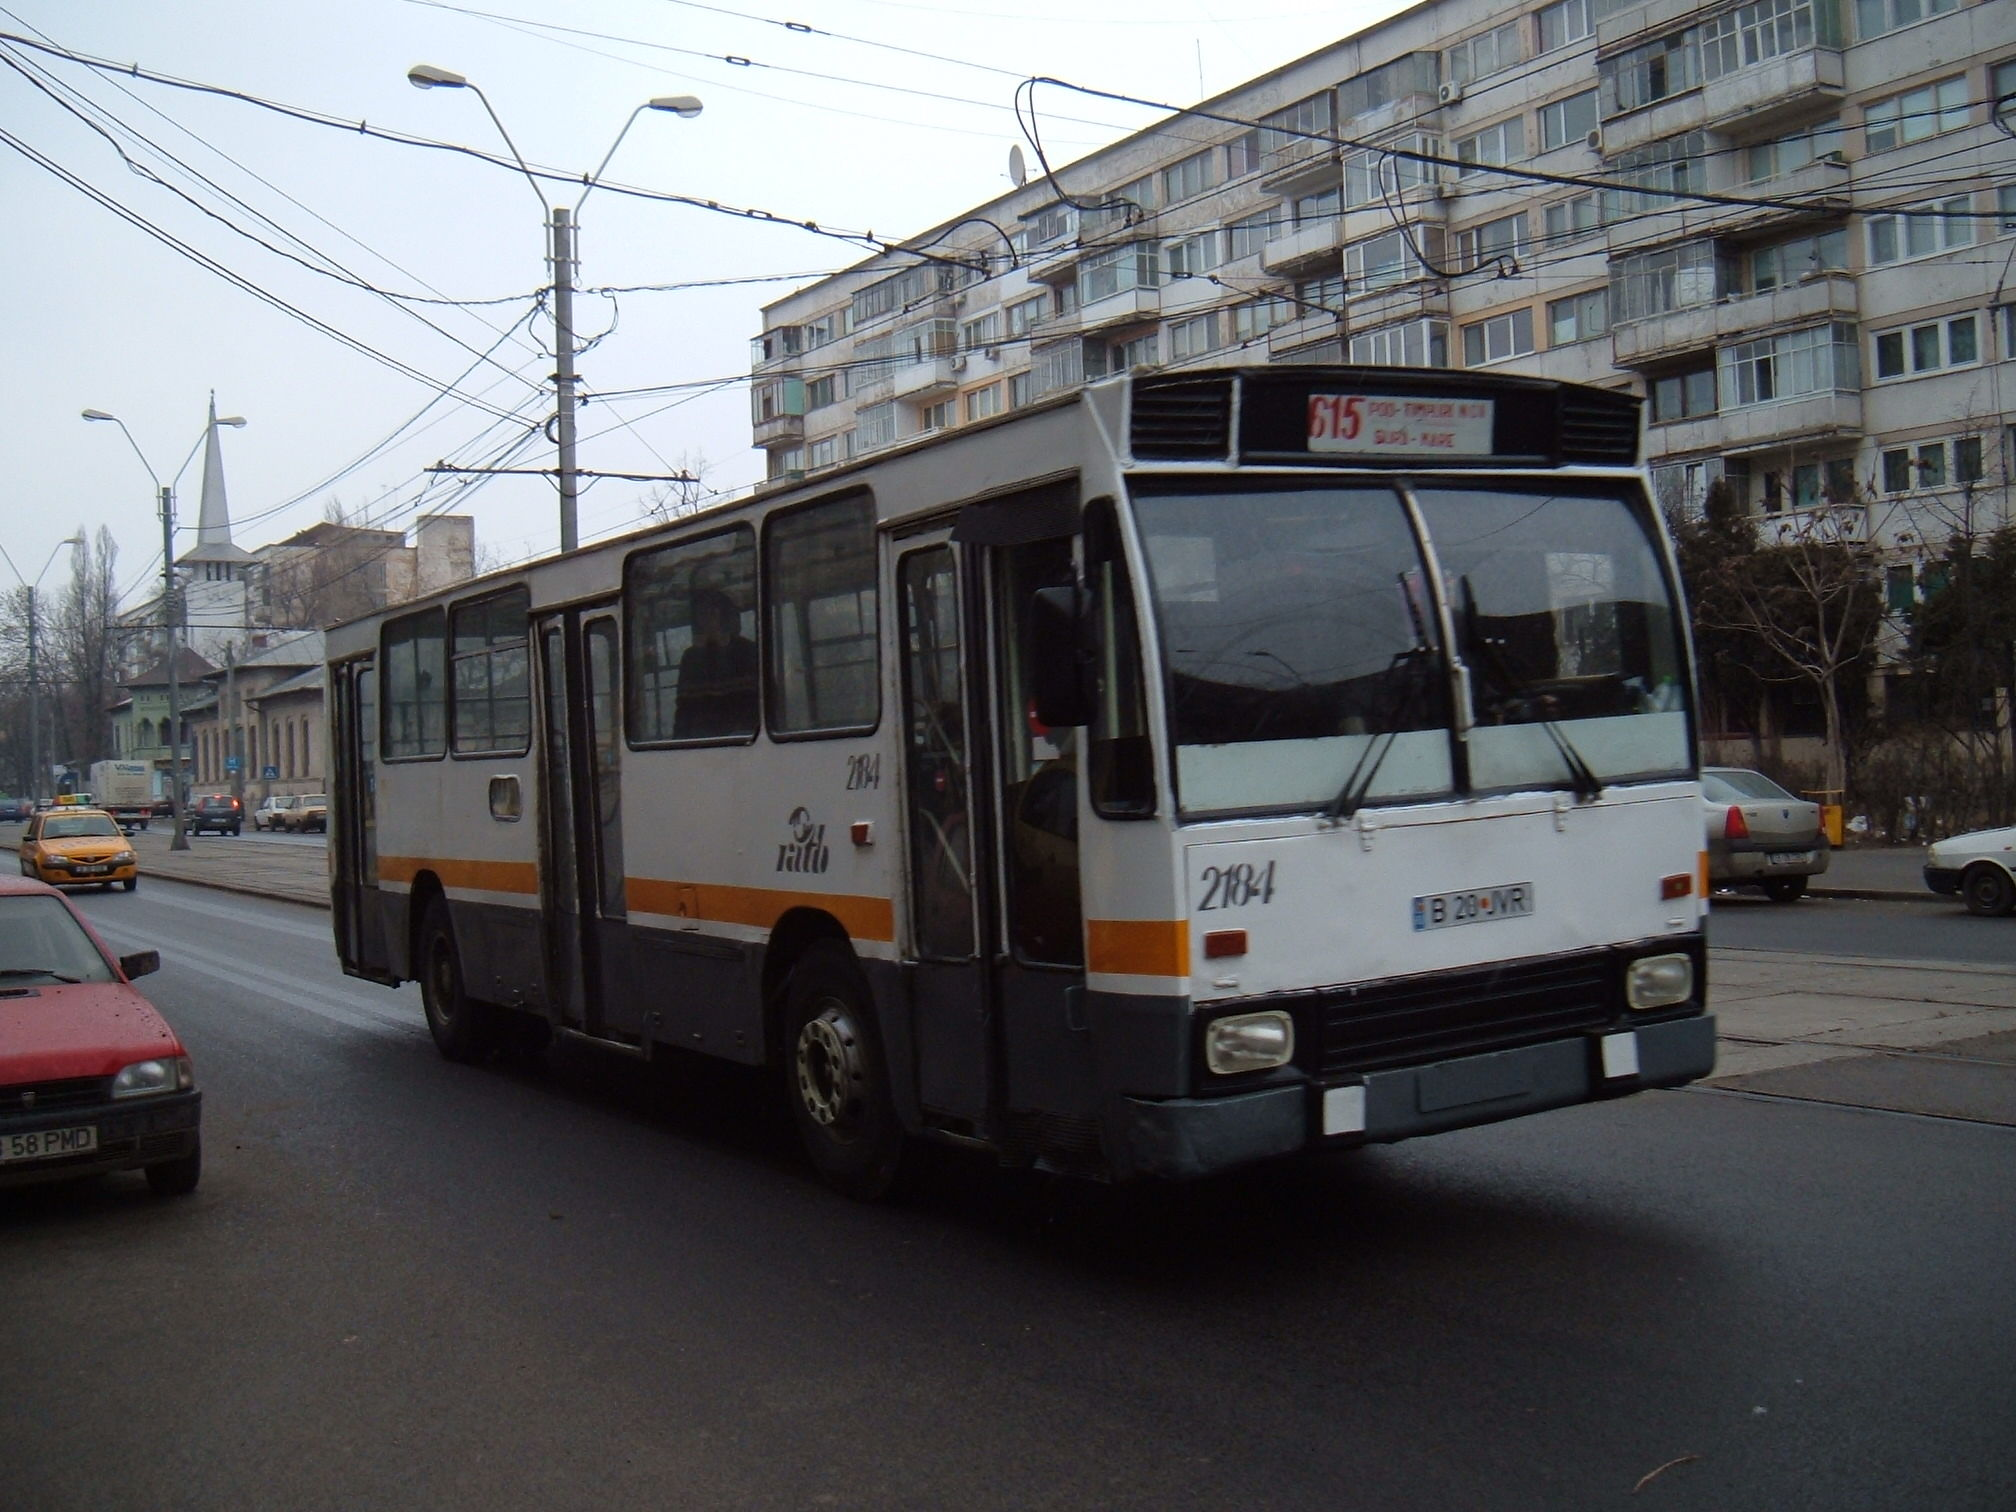 2184. Bus DAC on line 615. February 24, 2006